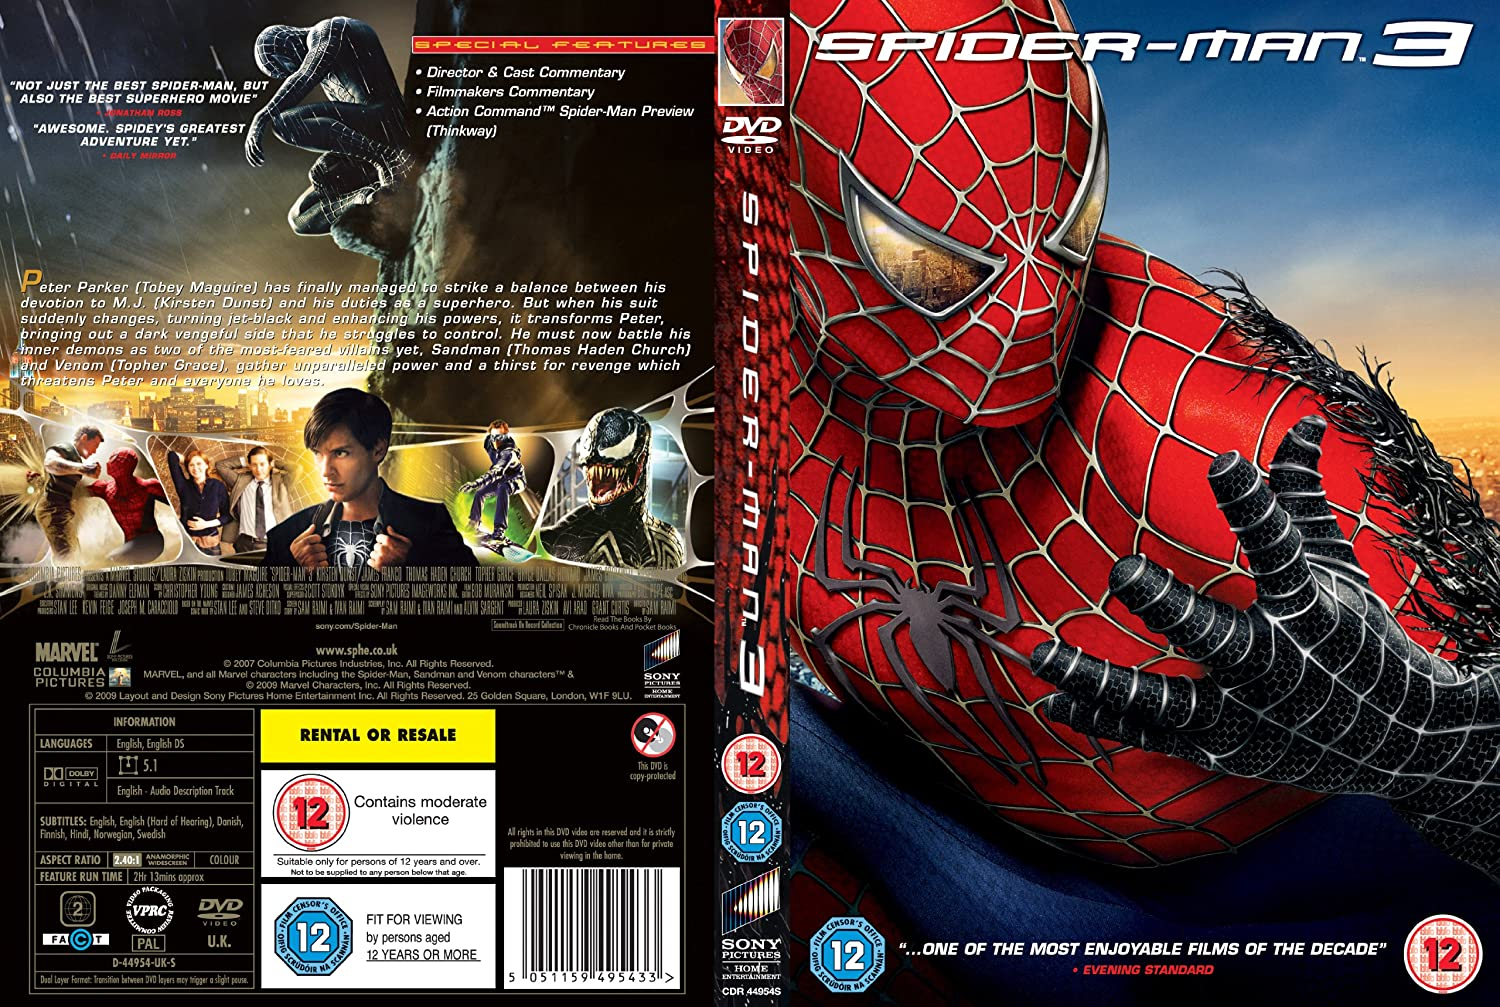 spider man 3 dvd cover images galleries with a bite. Black Bedroom Furniture Sets. Home Design Ideas